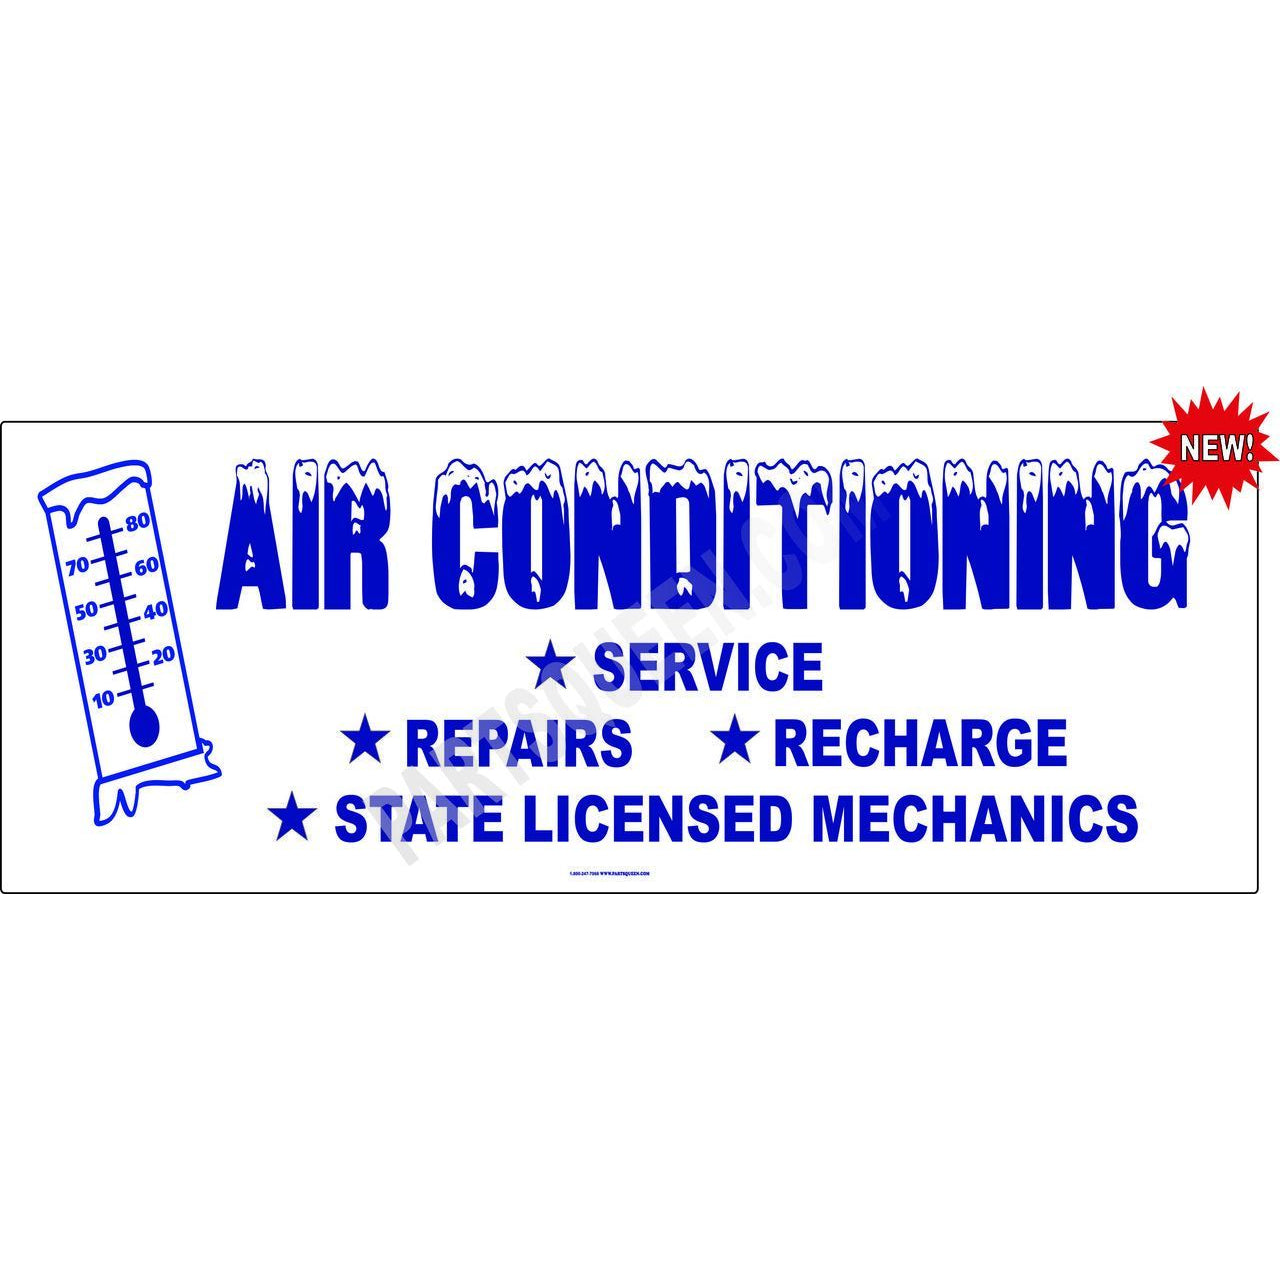 Air Conditioning Sign Vinyl Auto Repair Wall Poster Display Lona Anuncio 3ft X 9ft A//C Service Here II Banner